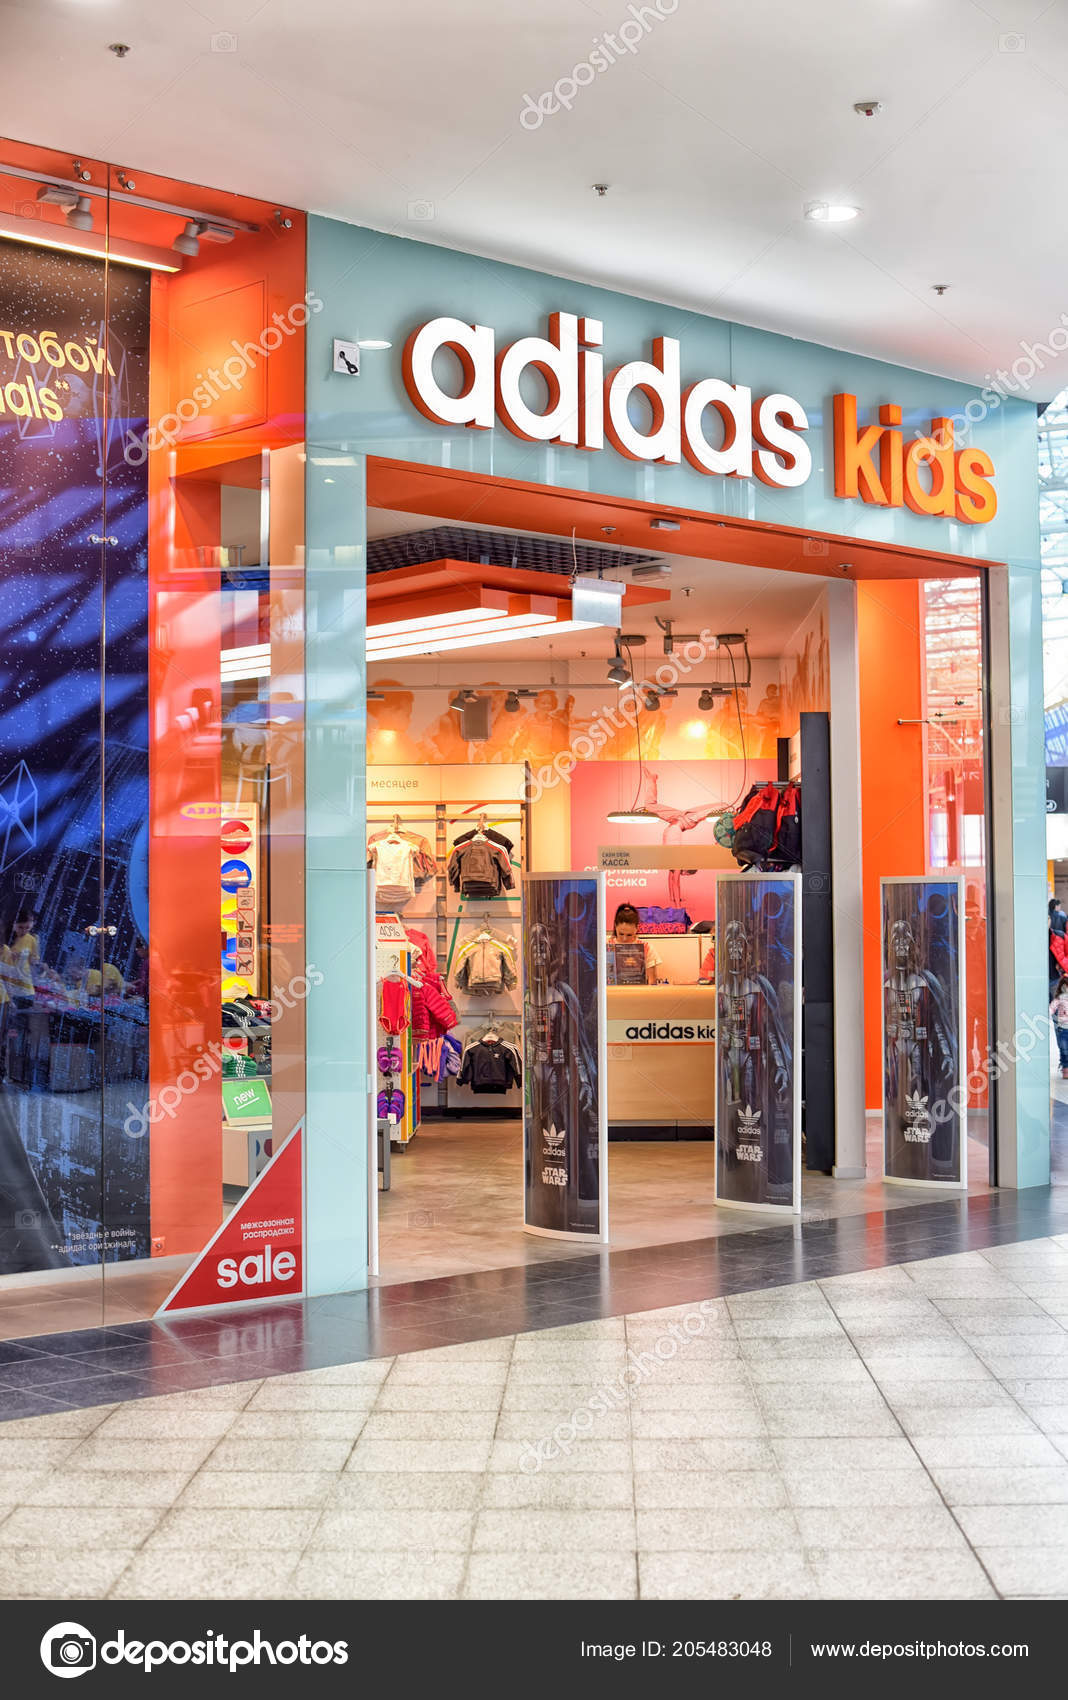 adidas kids outlet Shop Clothing